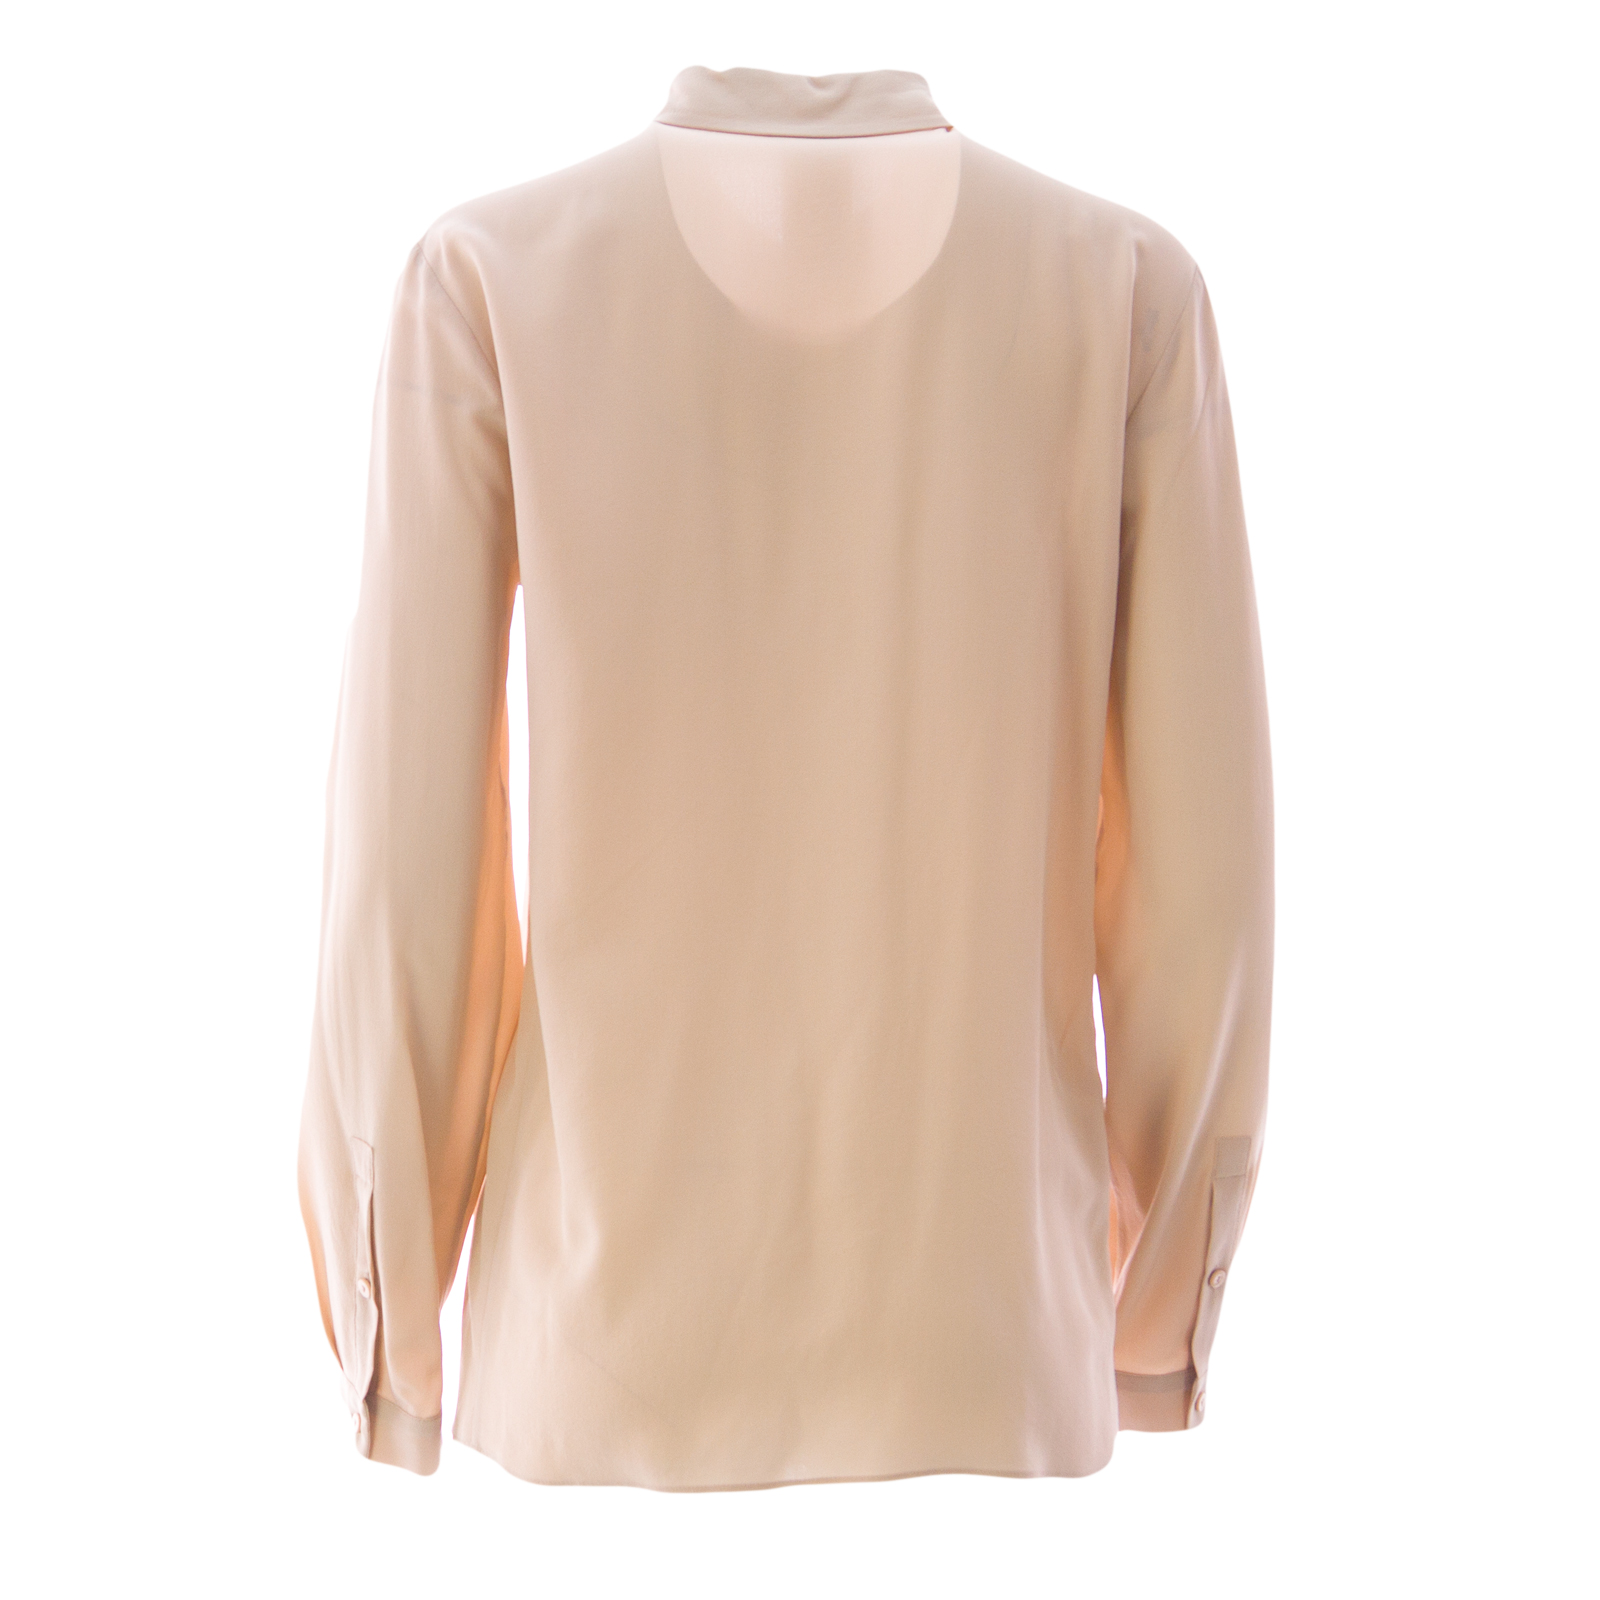 S MaxMara Long Sleeve Button-Up Top Supply Sale Online Extremely HQcG8